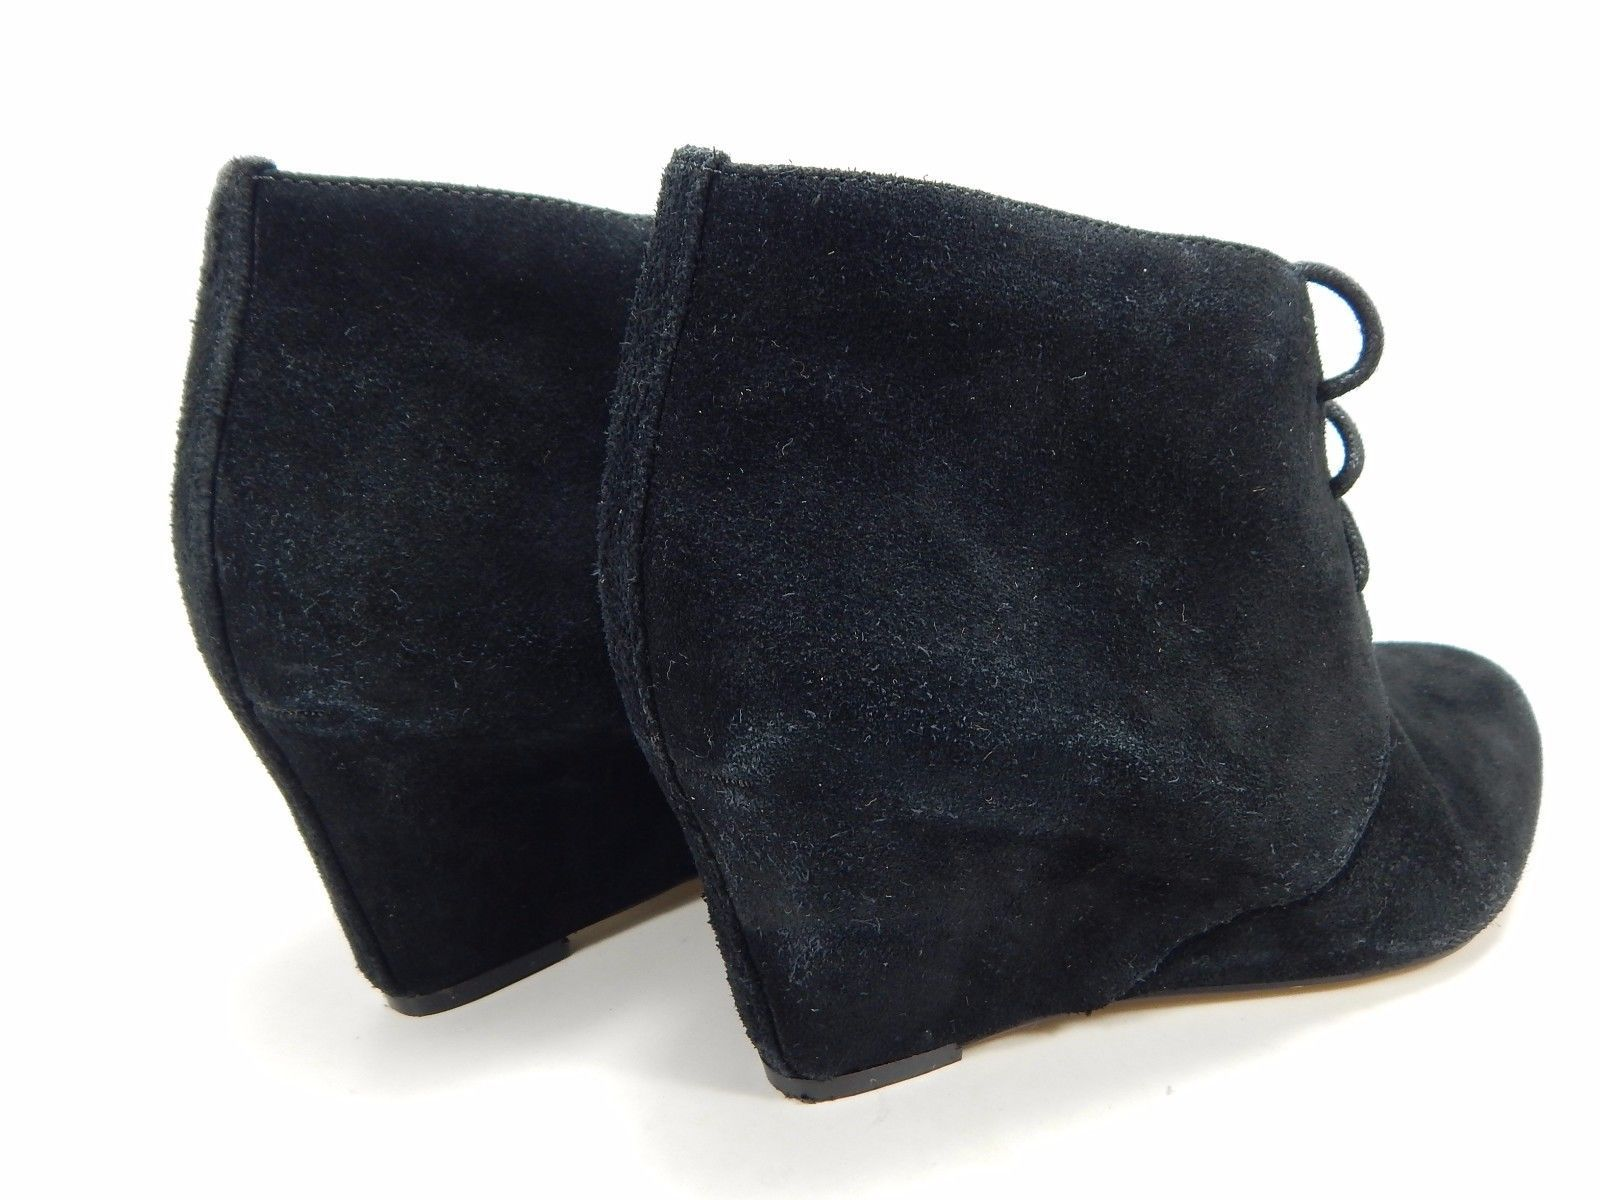 INC International Hadlee Wedge Platform Women's Size US 6.5 Black $99